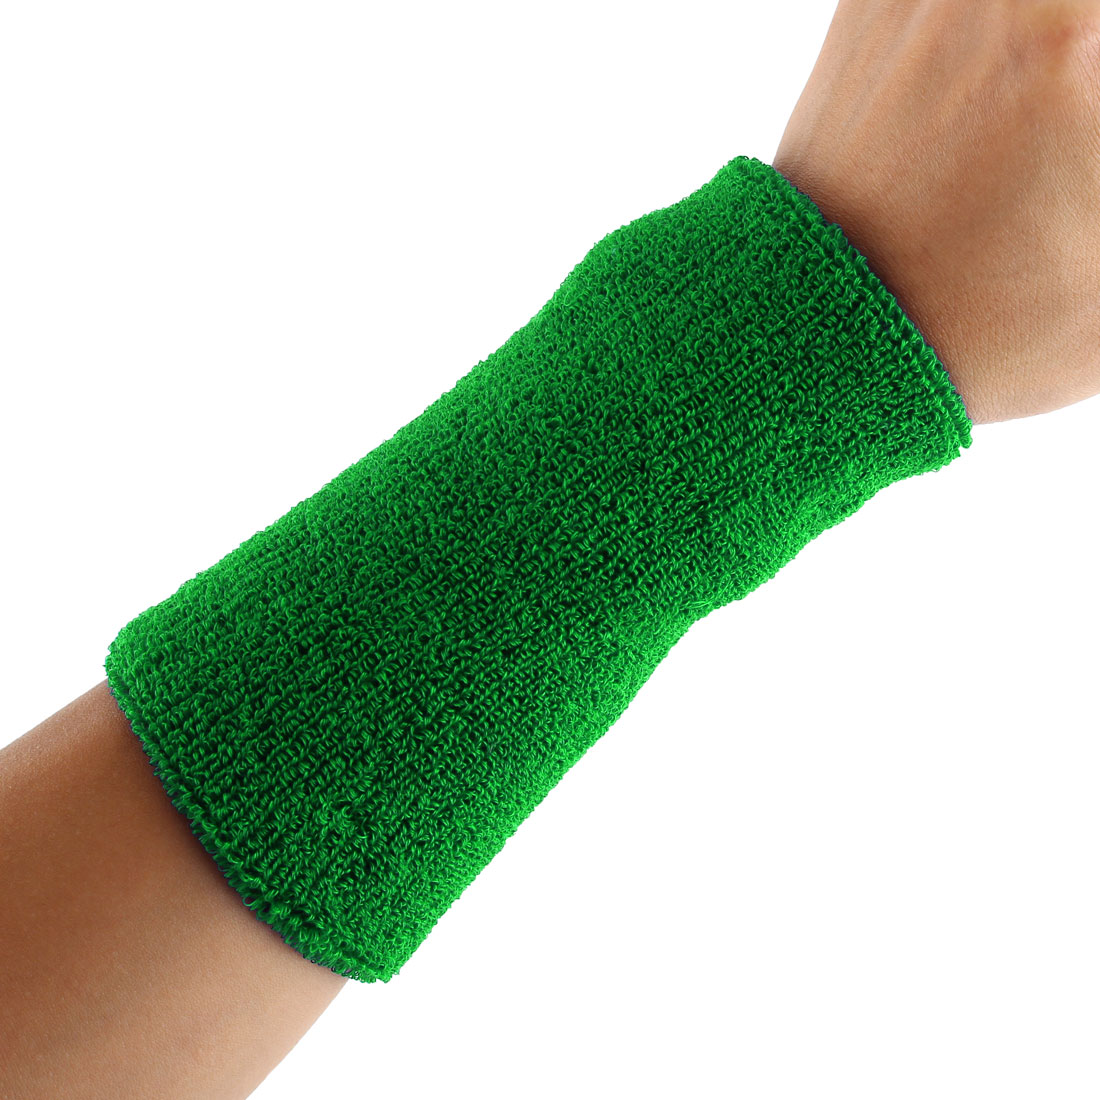 Exercises Basketball Running Hand Support Bandage Sweatband Wristband Sport Wrist Green 15cm Long 2pcs